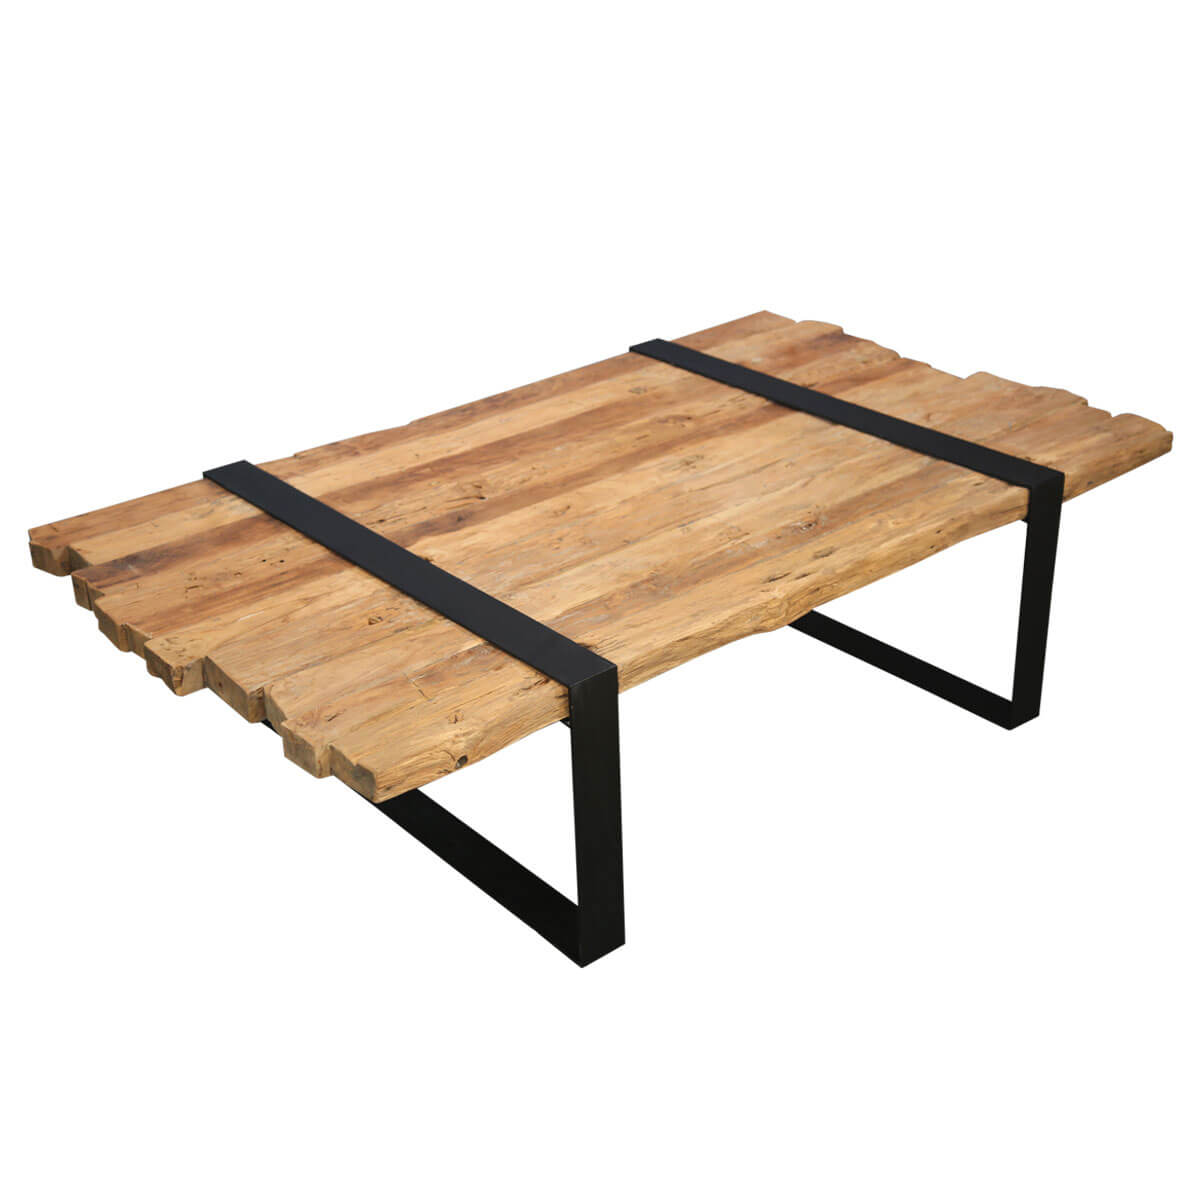 Awesome Garner Unique Teak Wood Plank Top Iron Base Coffee Table Short Links Chair Design For Home Short Linksinfo